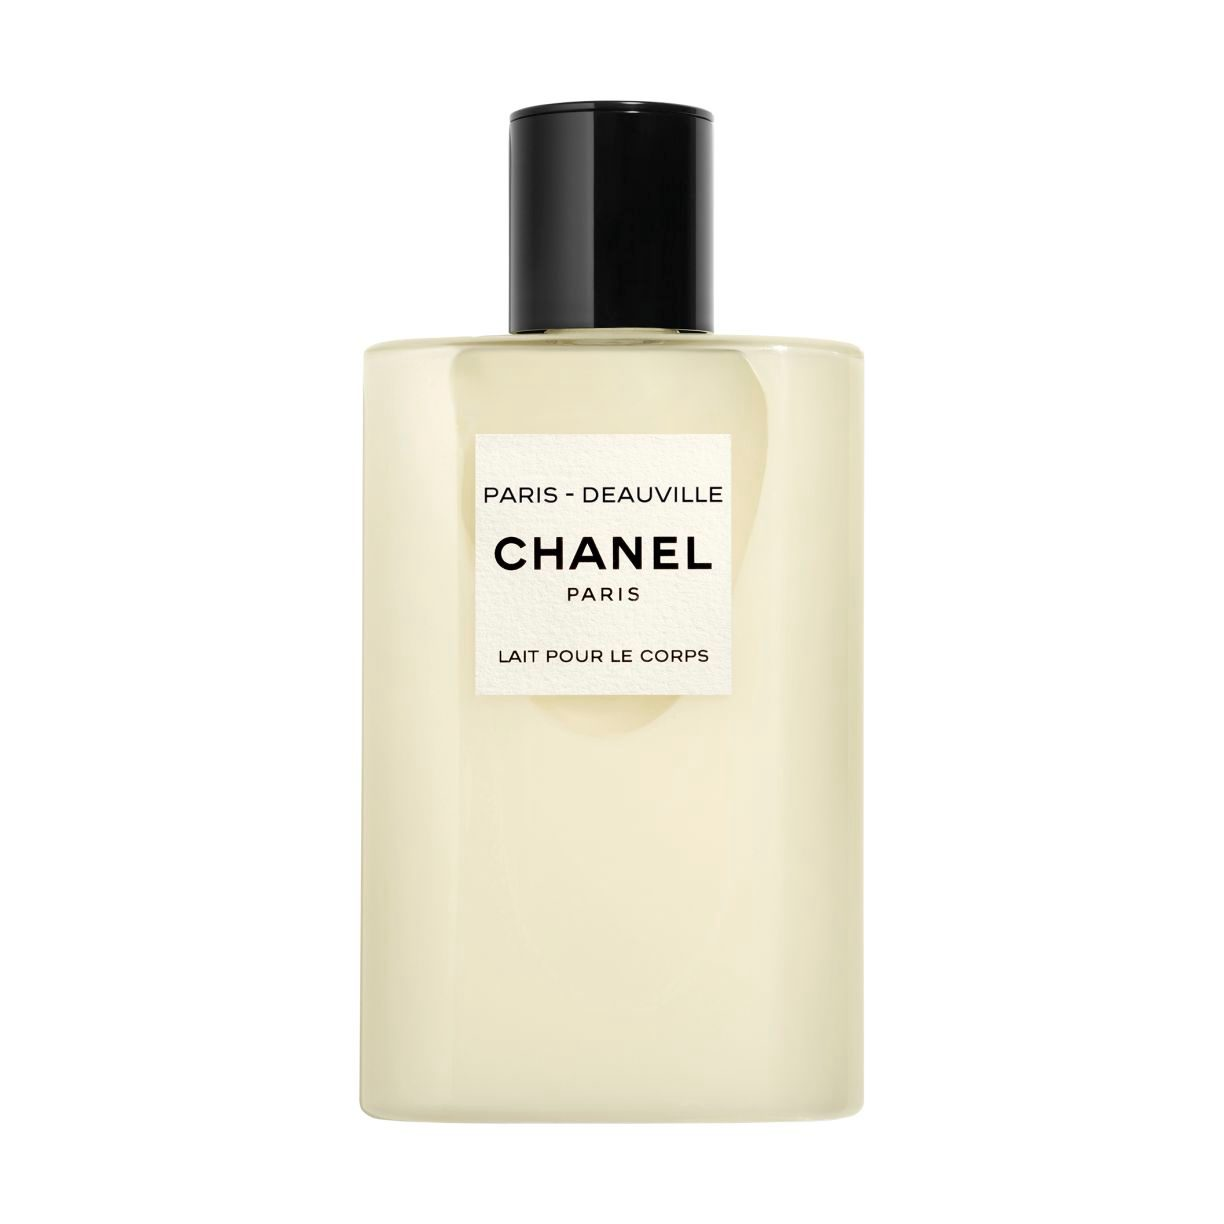 LES EAUX DE CHANEL PARIS - DEAUVILLE - BODY LOTION